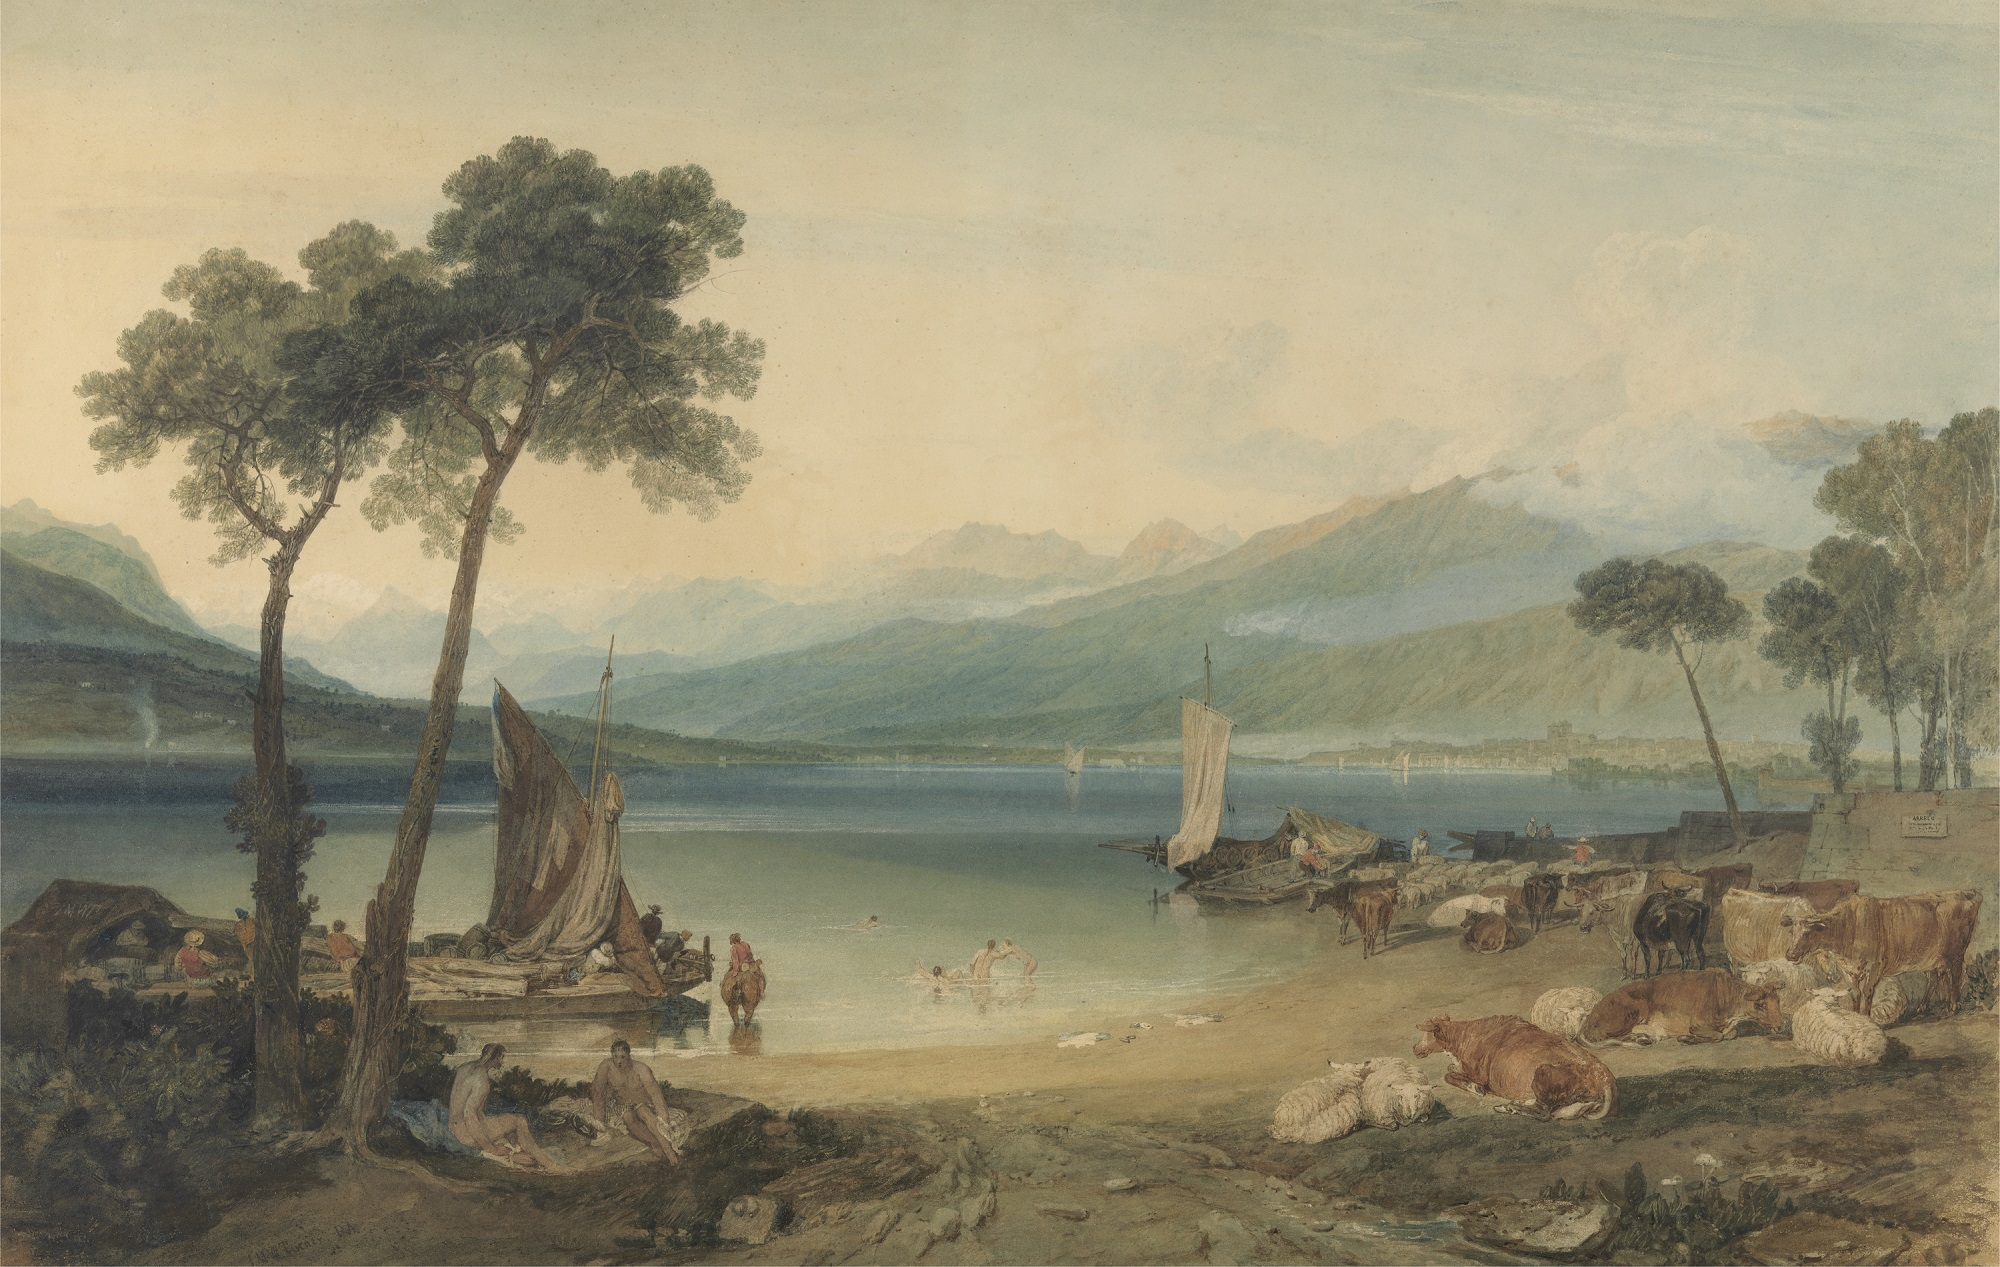 Joseph Mallord William Turner, Lake Geneva and Mount Blanc, 1802 to 1805, Watercolour, Yale Center for British Art, Paul Mellon Collection